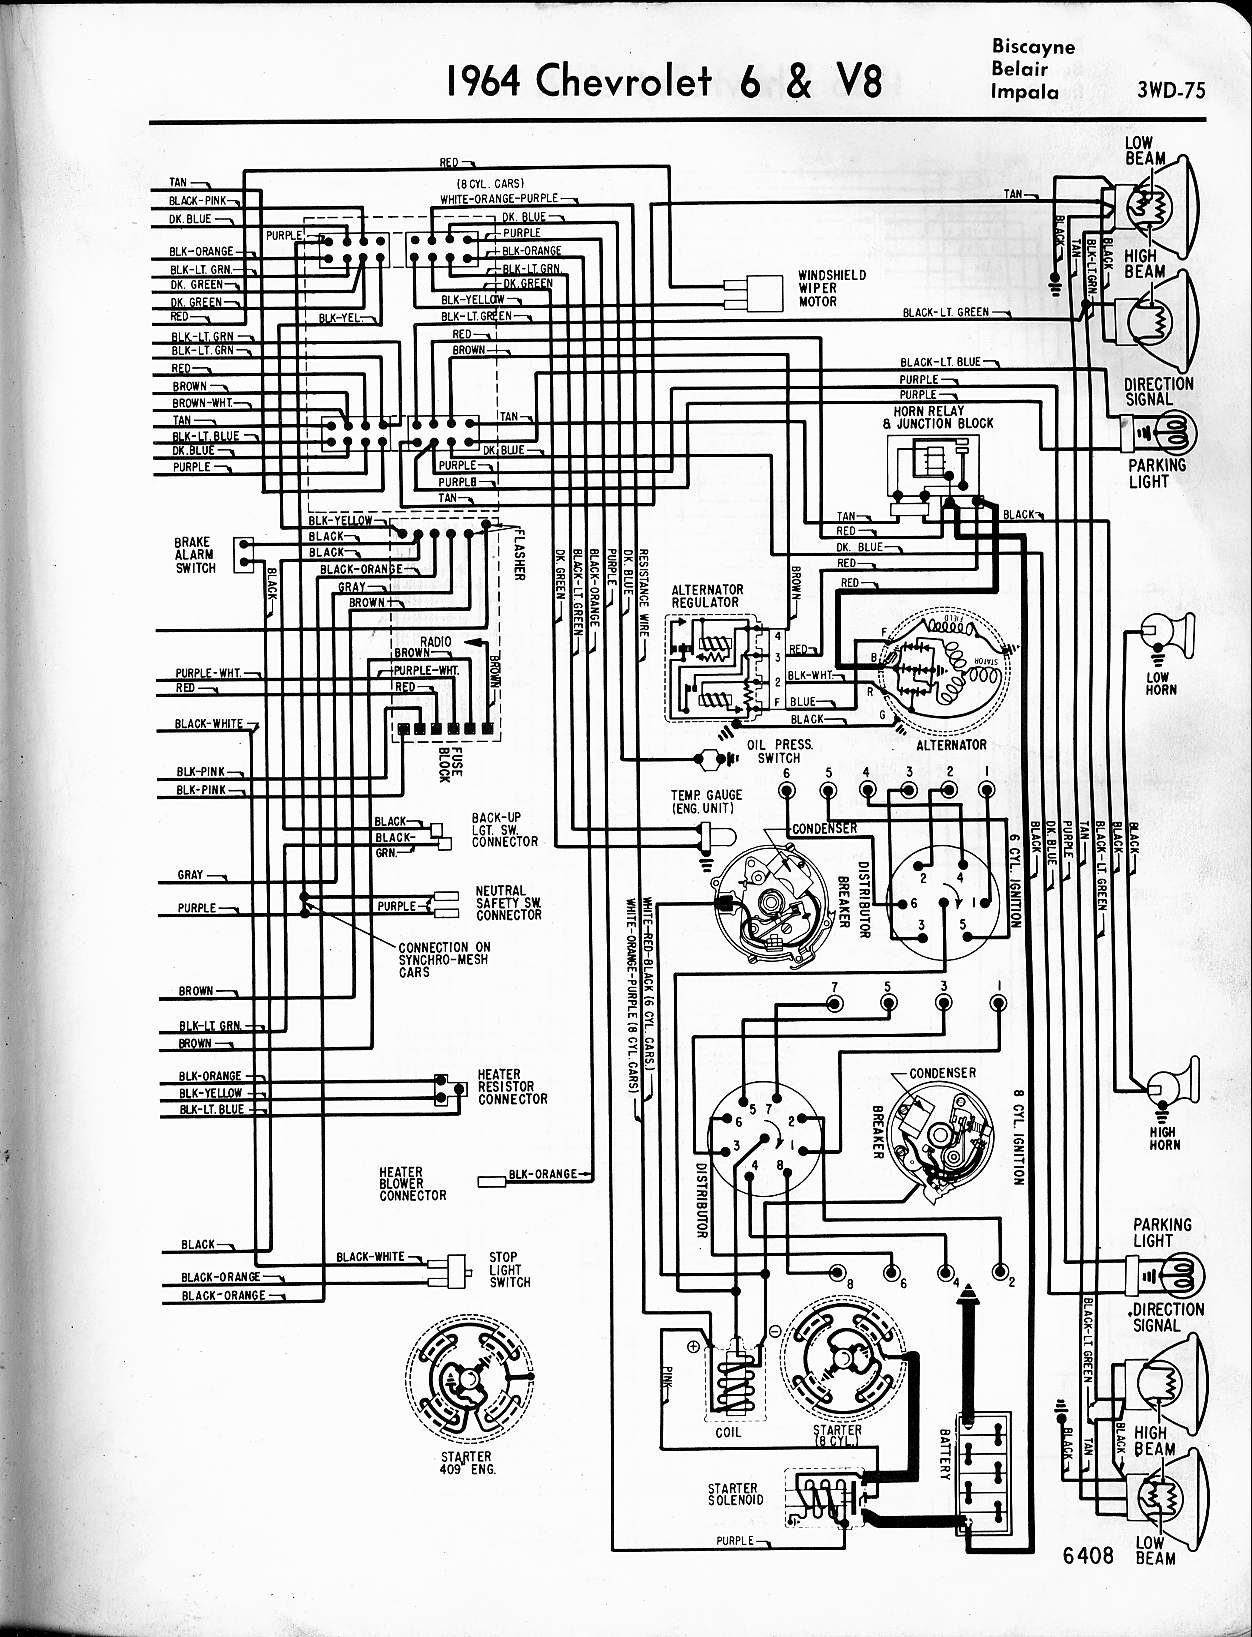 hight resolution of 57 65 chevy wiring diagrams1964 6 u0026 v8 biscayne belair impala